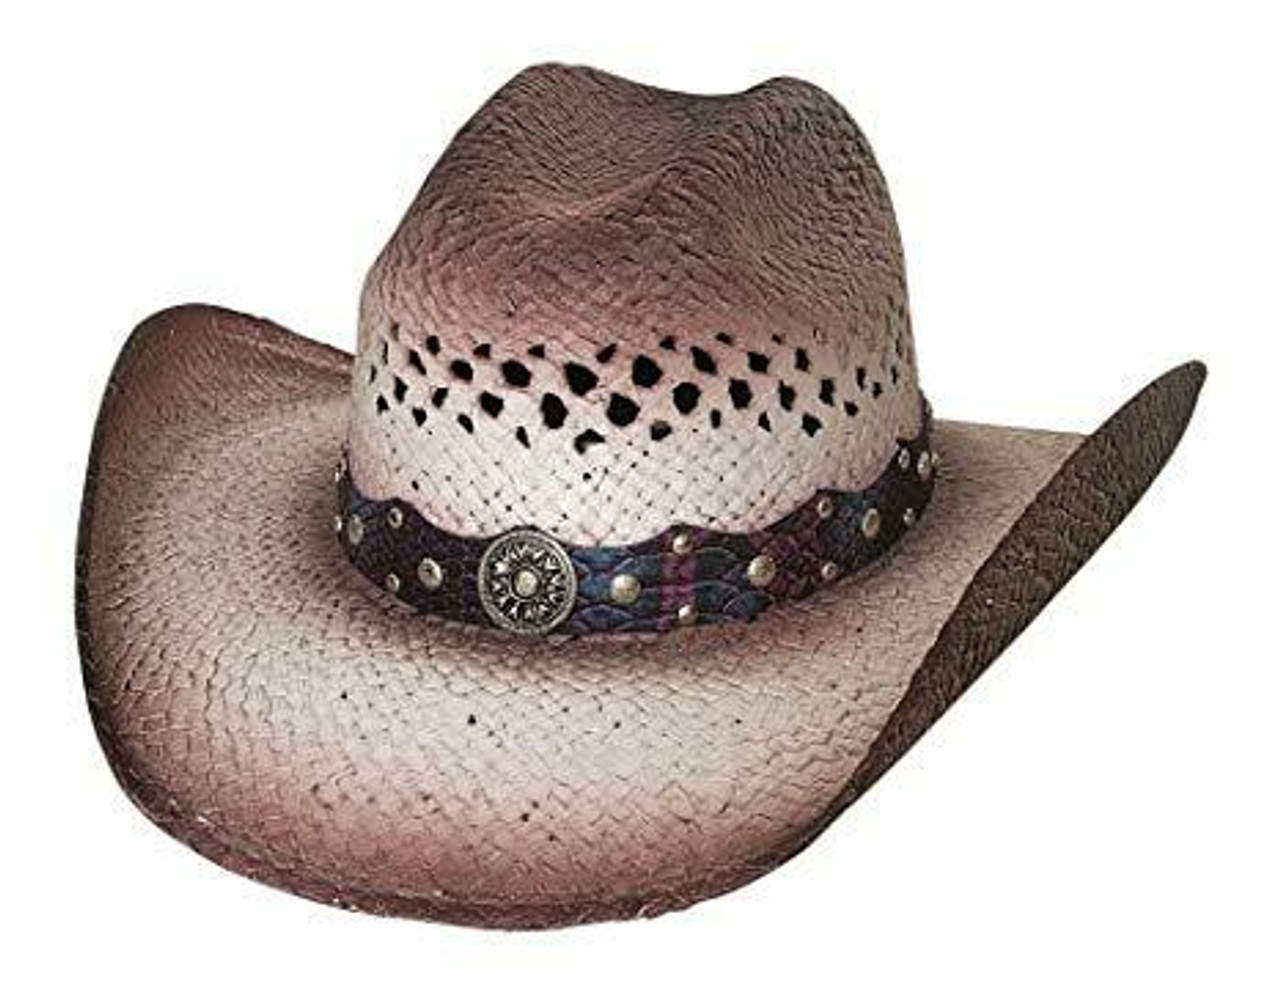 7130707856f Pretty Girl Straw Cowgirl Hat by Montecarlo Hats 2975 - Cowtown ...